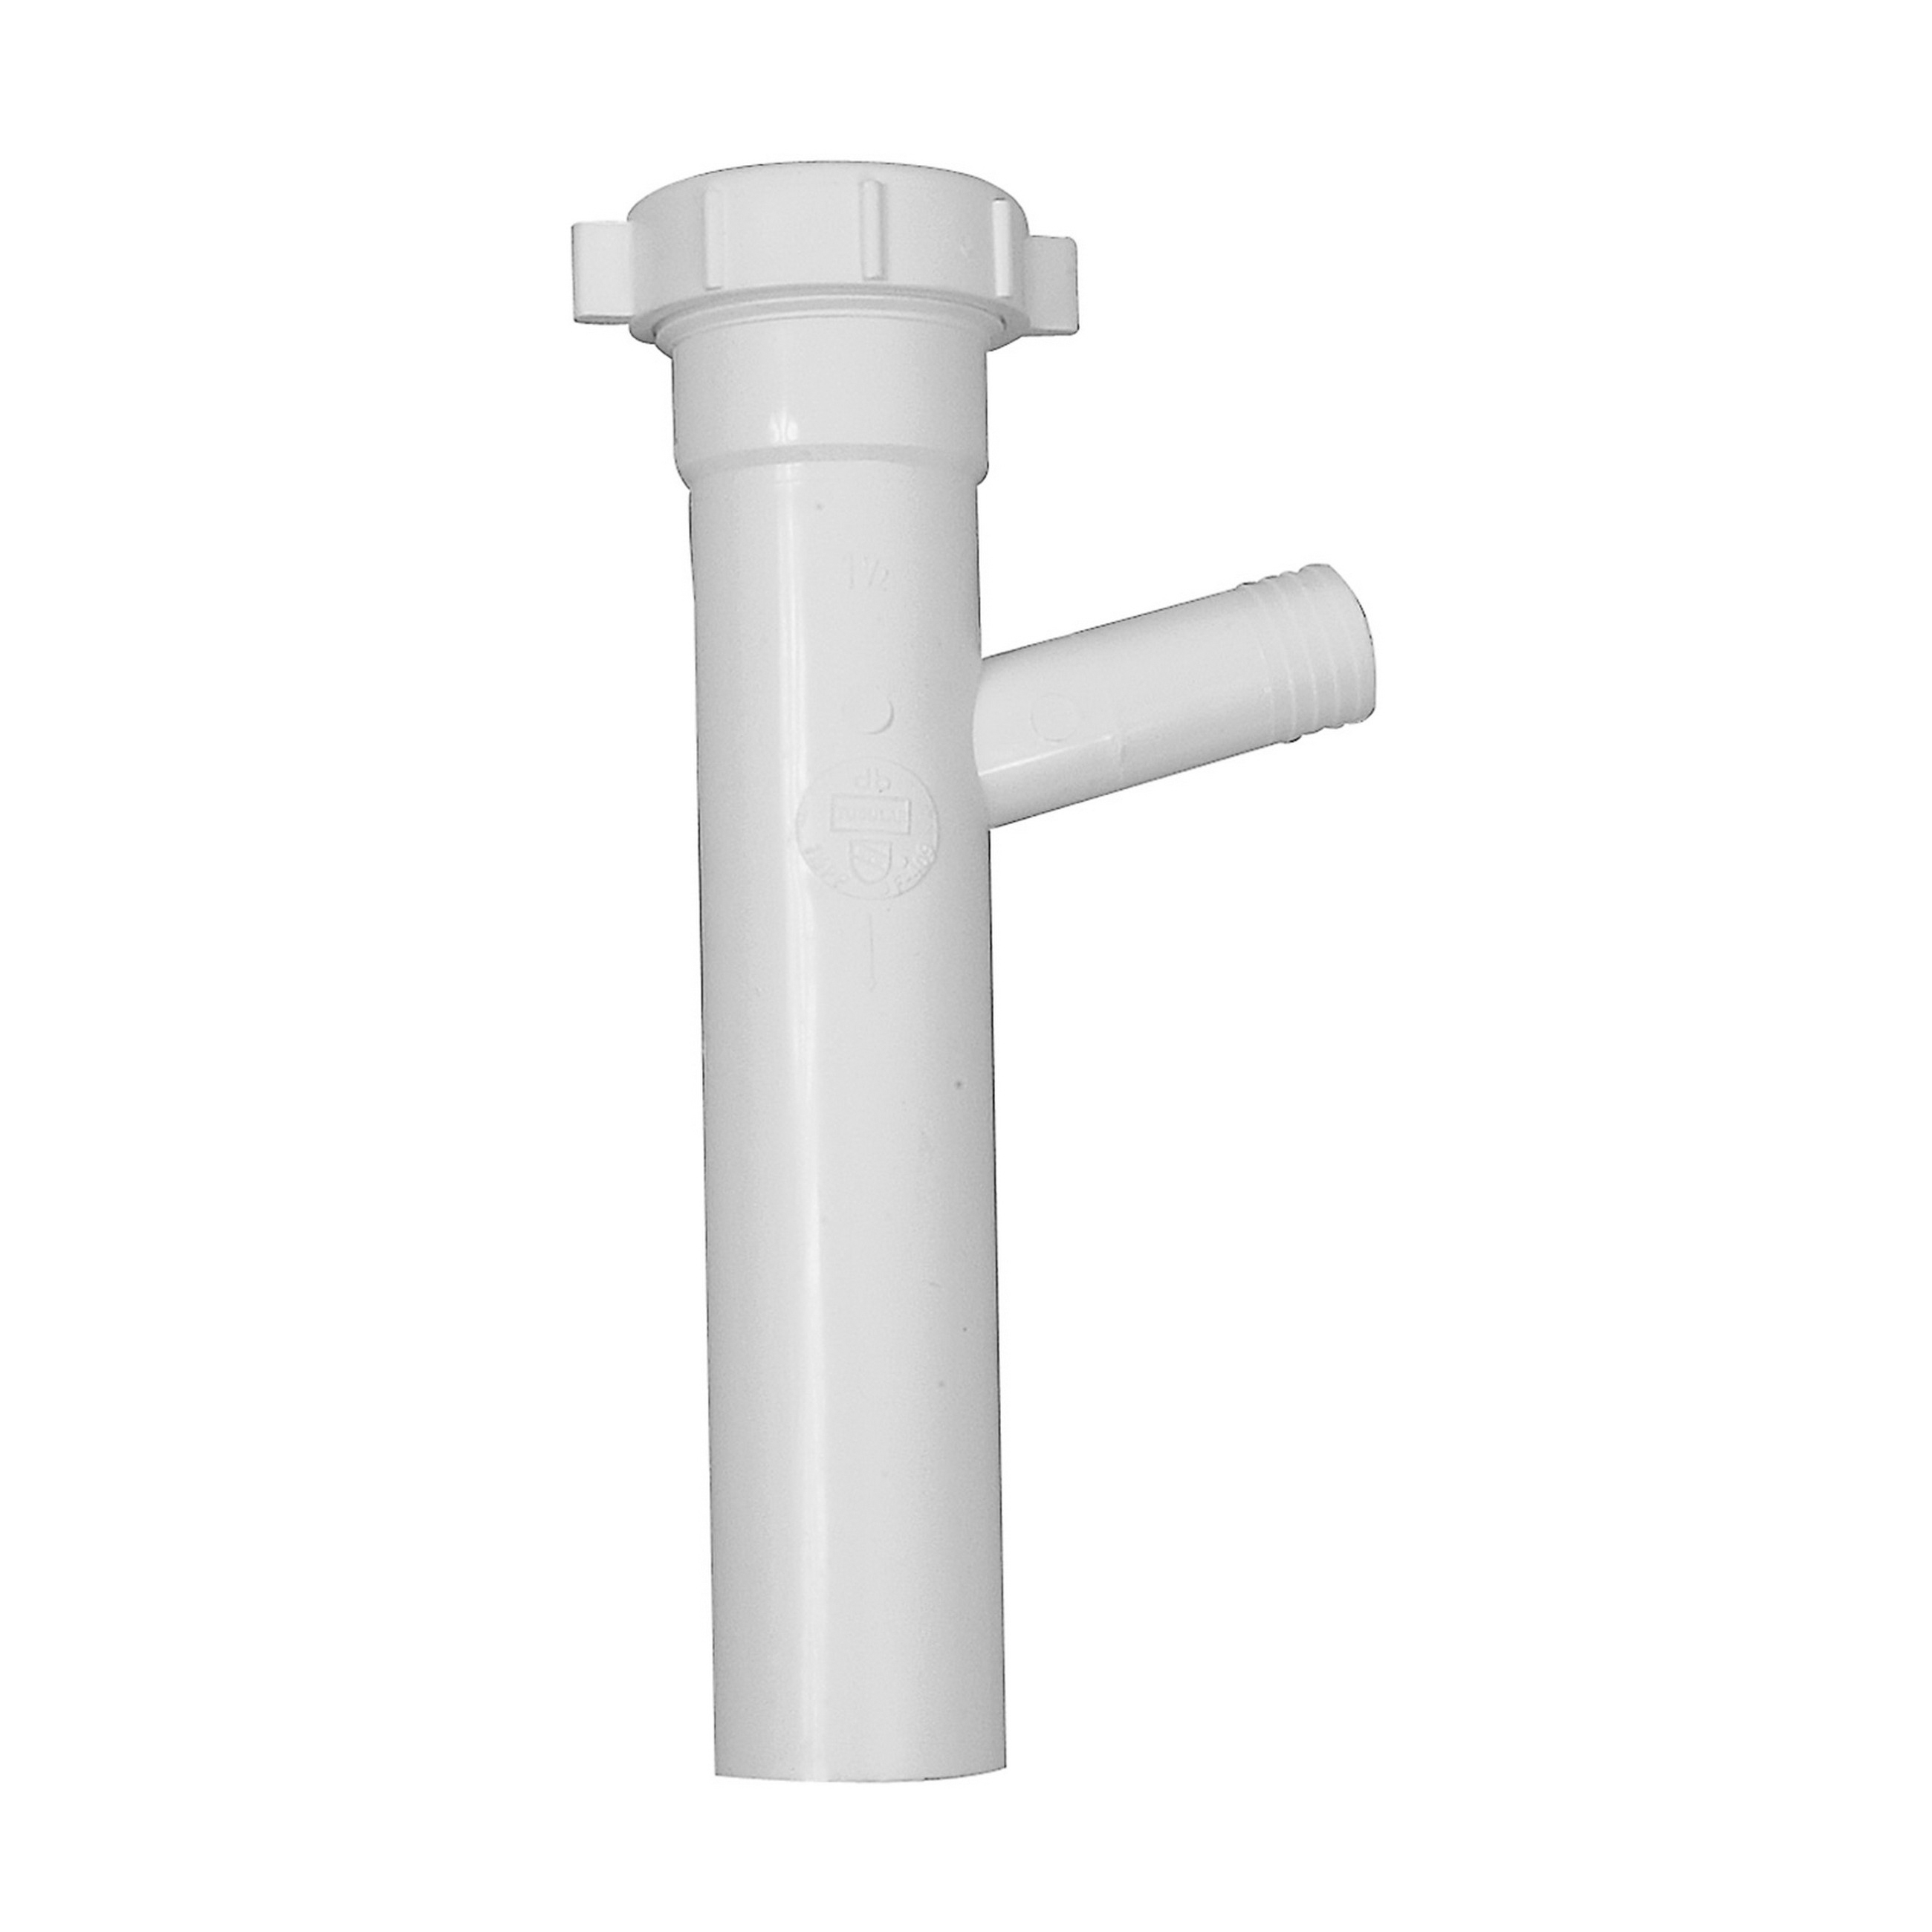 Dearborn® PP9817 Tubular Branch Tailpiece, 1-1/2 in, 8 in L, Slip Joint Connection, Polypropylene Plastic, Domestic